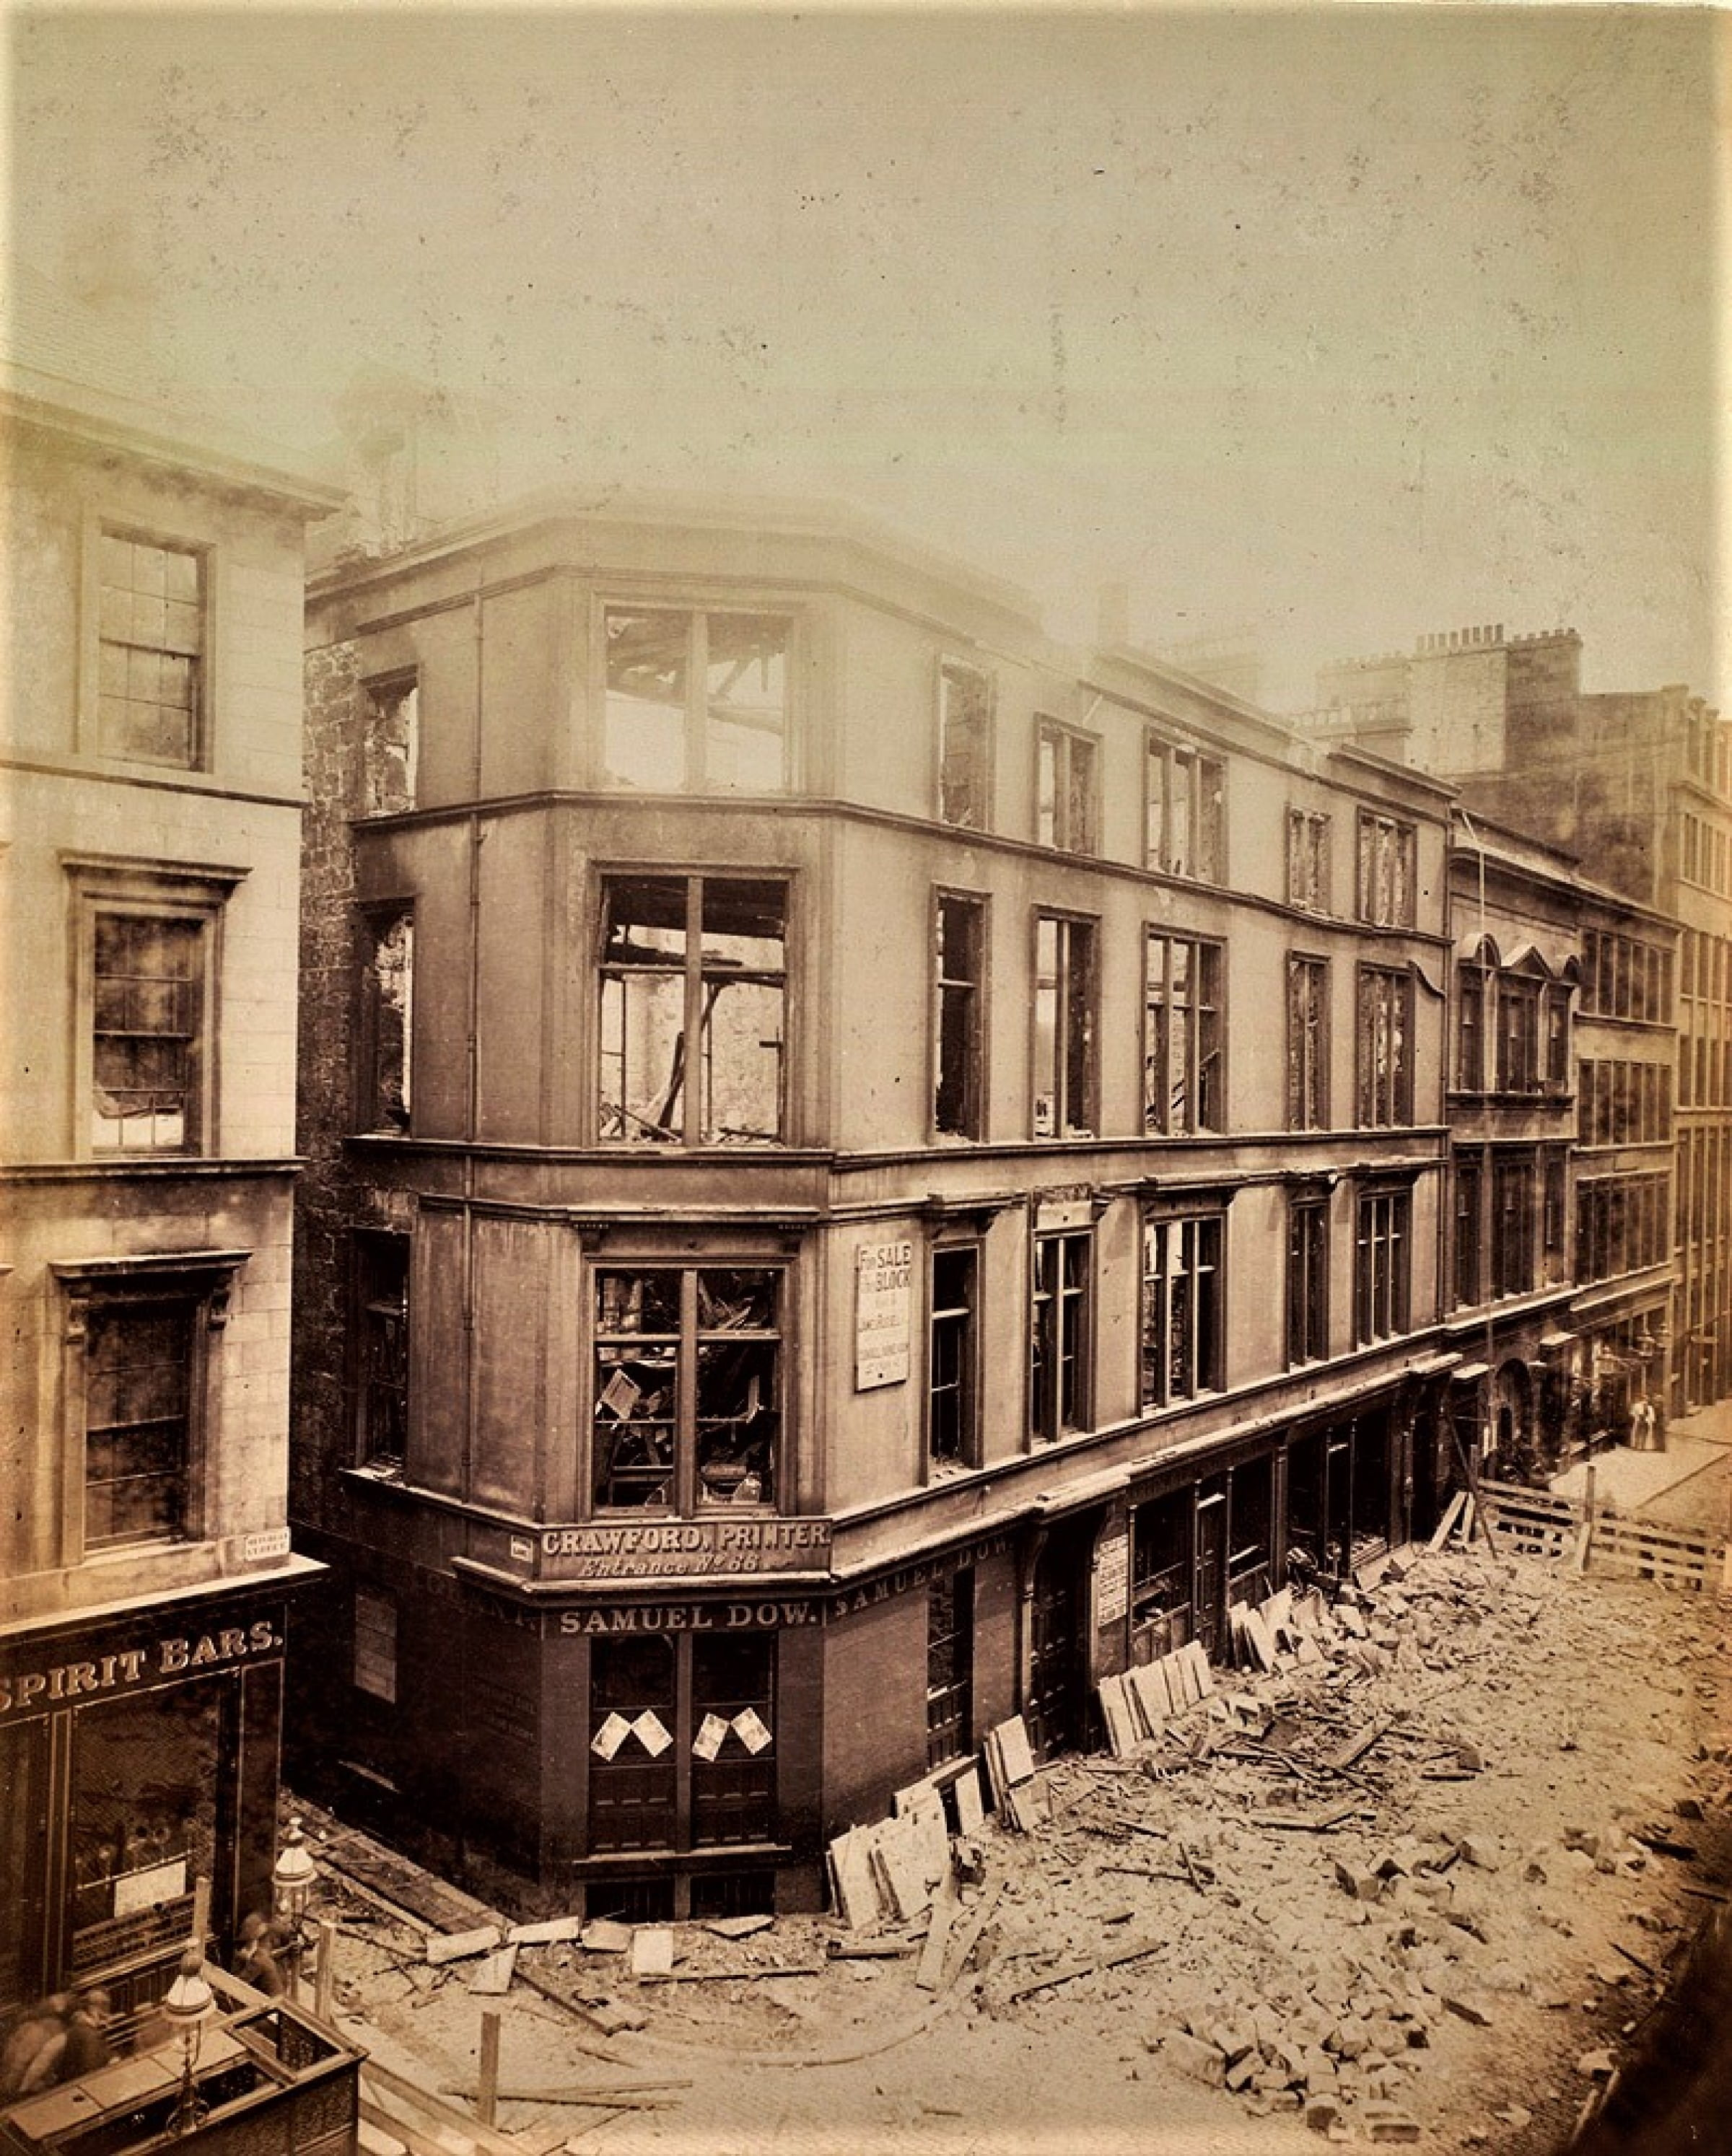 Printing and pasta (The corner of Mitchell Street and Mitchell Lane, in August 1892 (Glasgow Libraries))